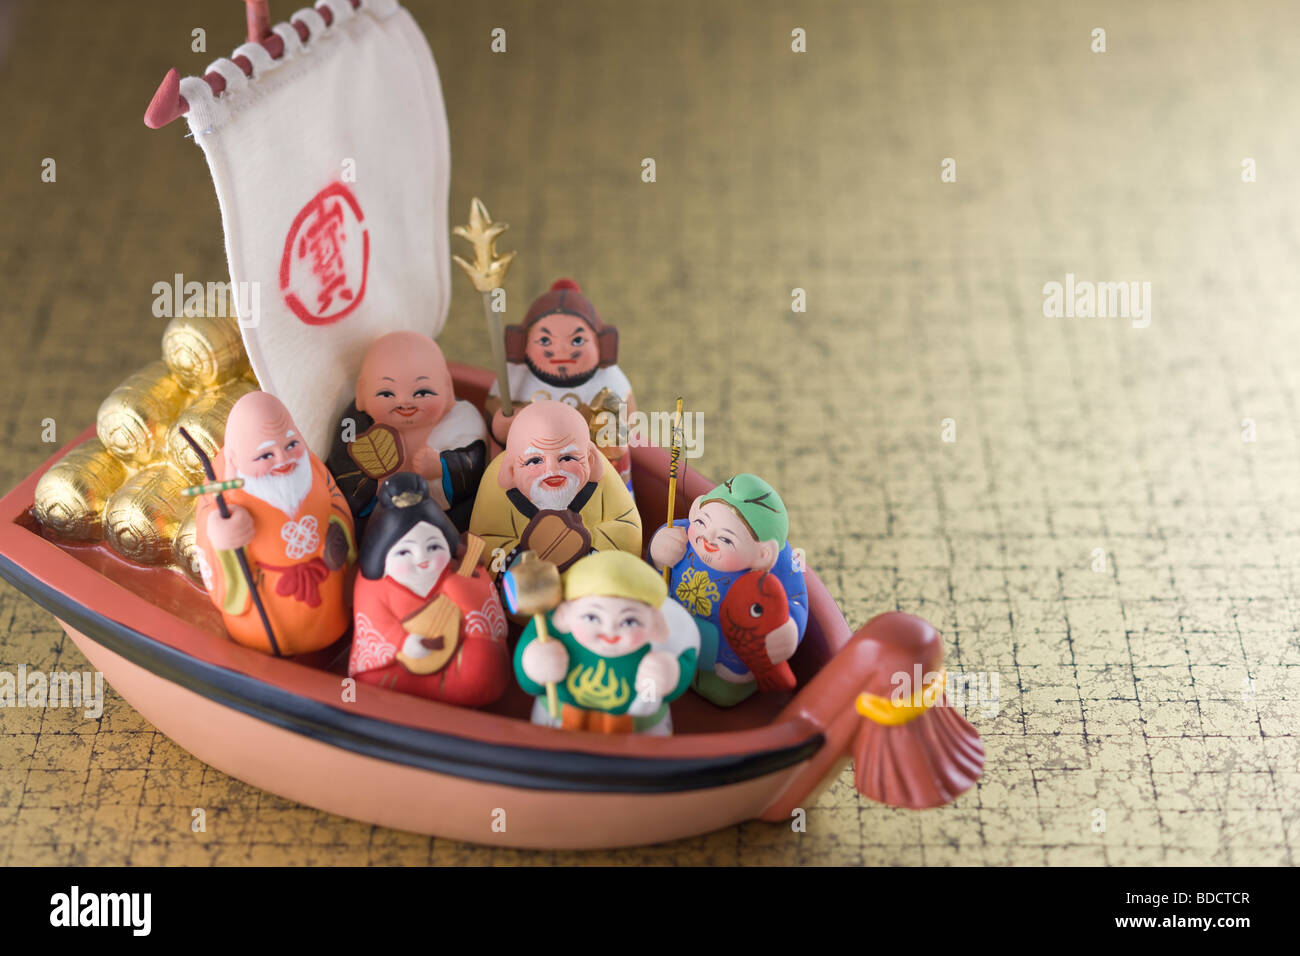 Japanese seven deities of luck - Stock Image